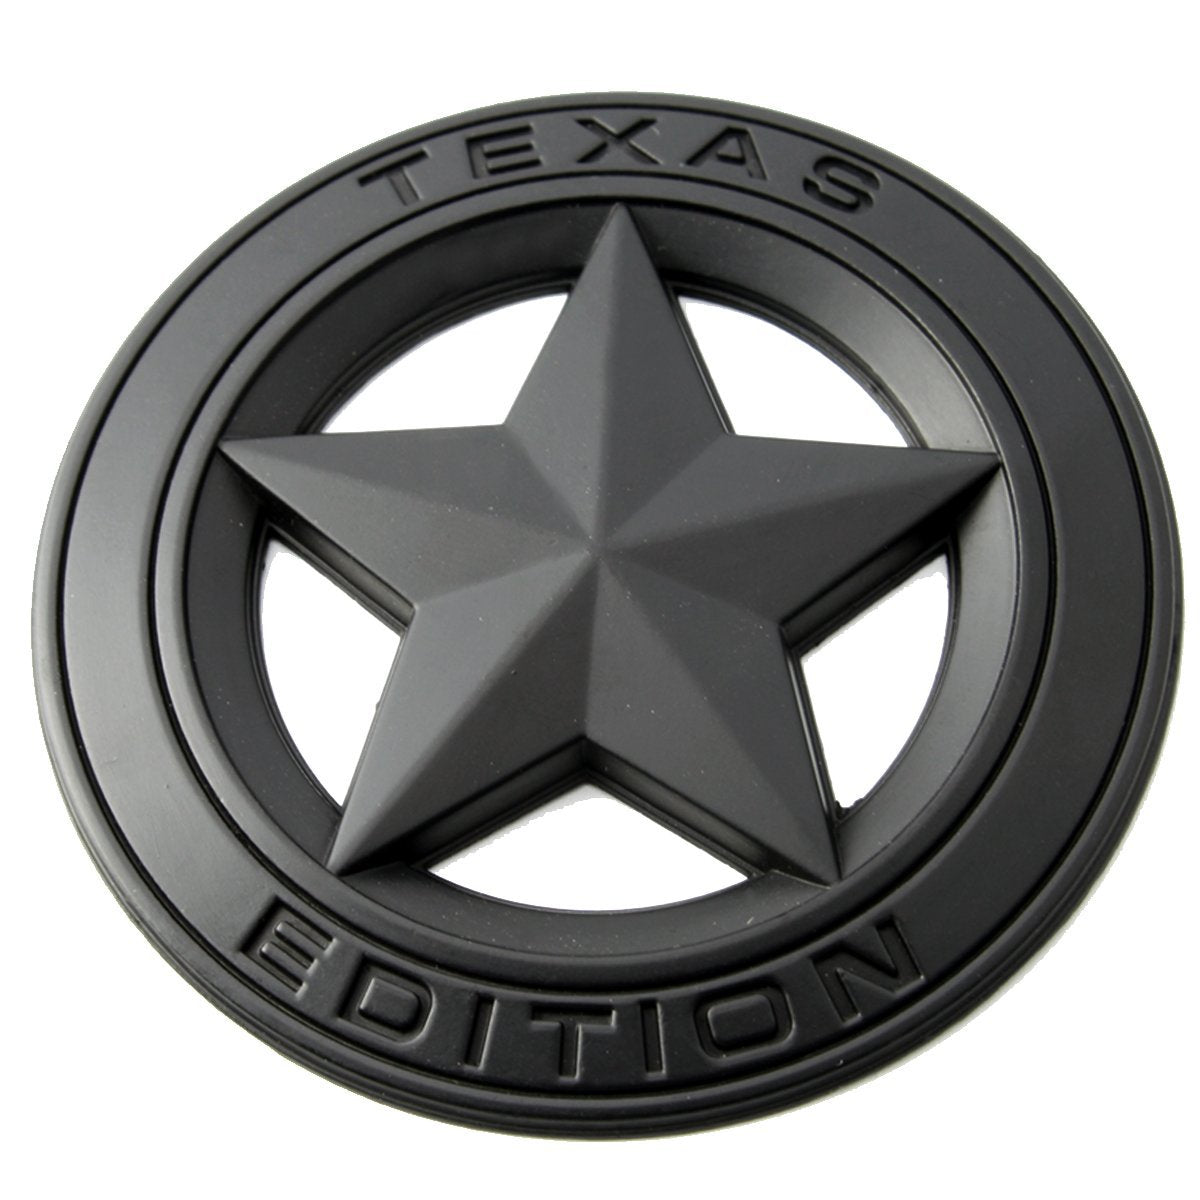 Star Metal Diameter 3 TEXAS EDITION Matt Black 3D Logo Decal Emblem